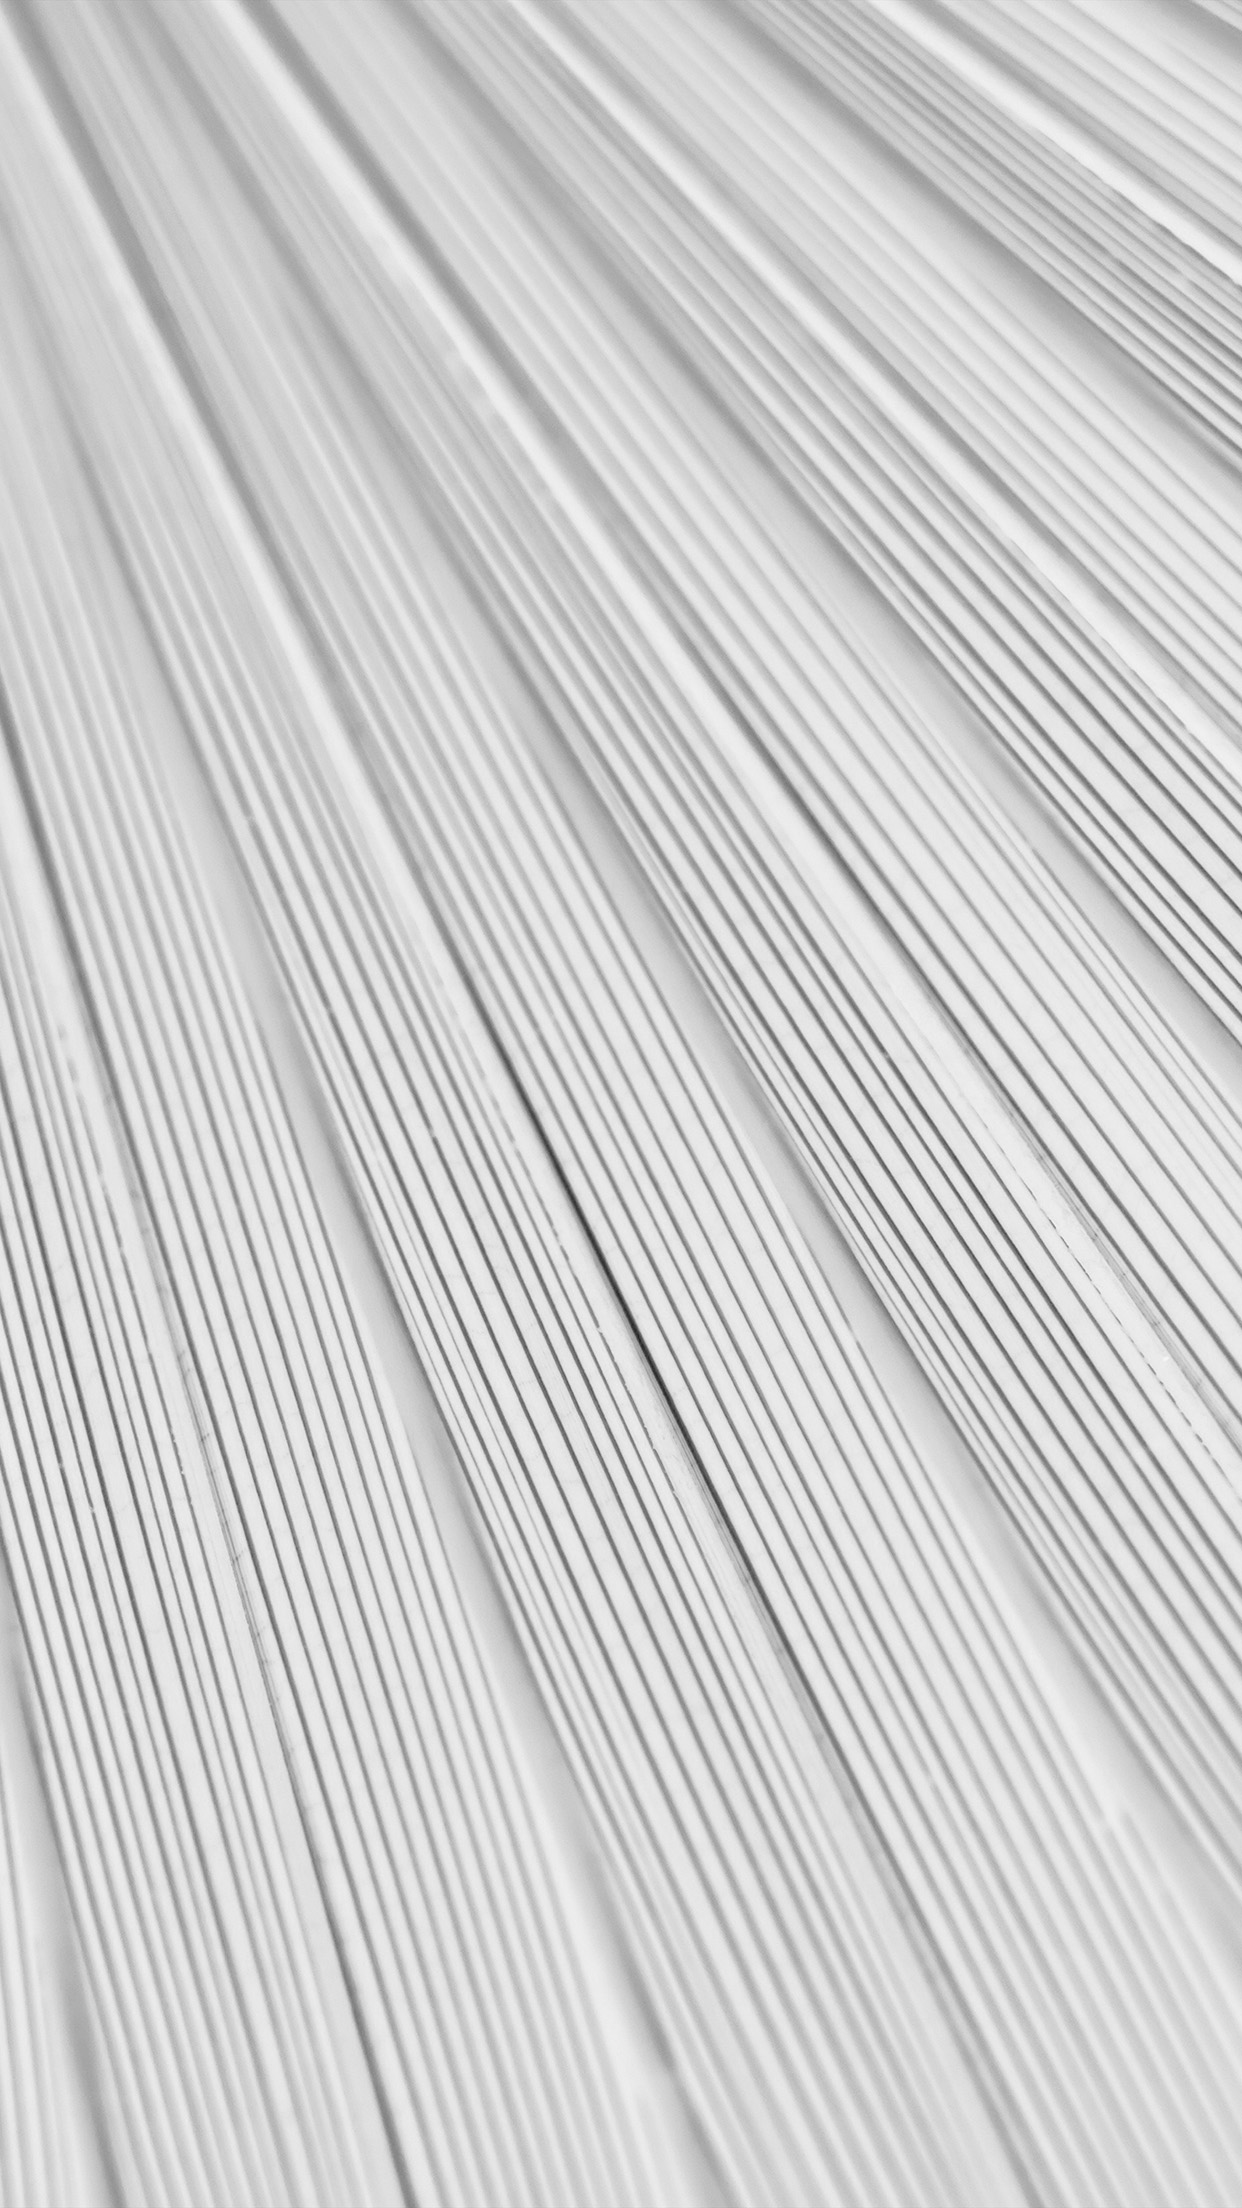 Vn32 Leaf White Surface Texture Nature Pattern Bw Wallpaper